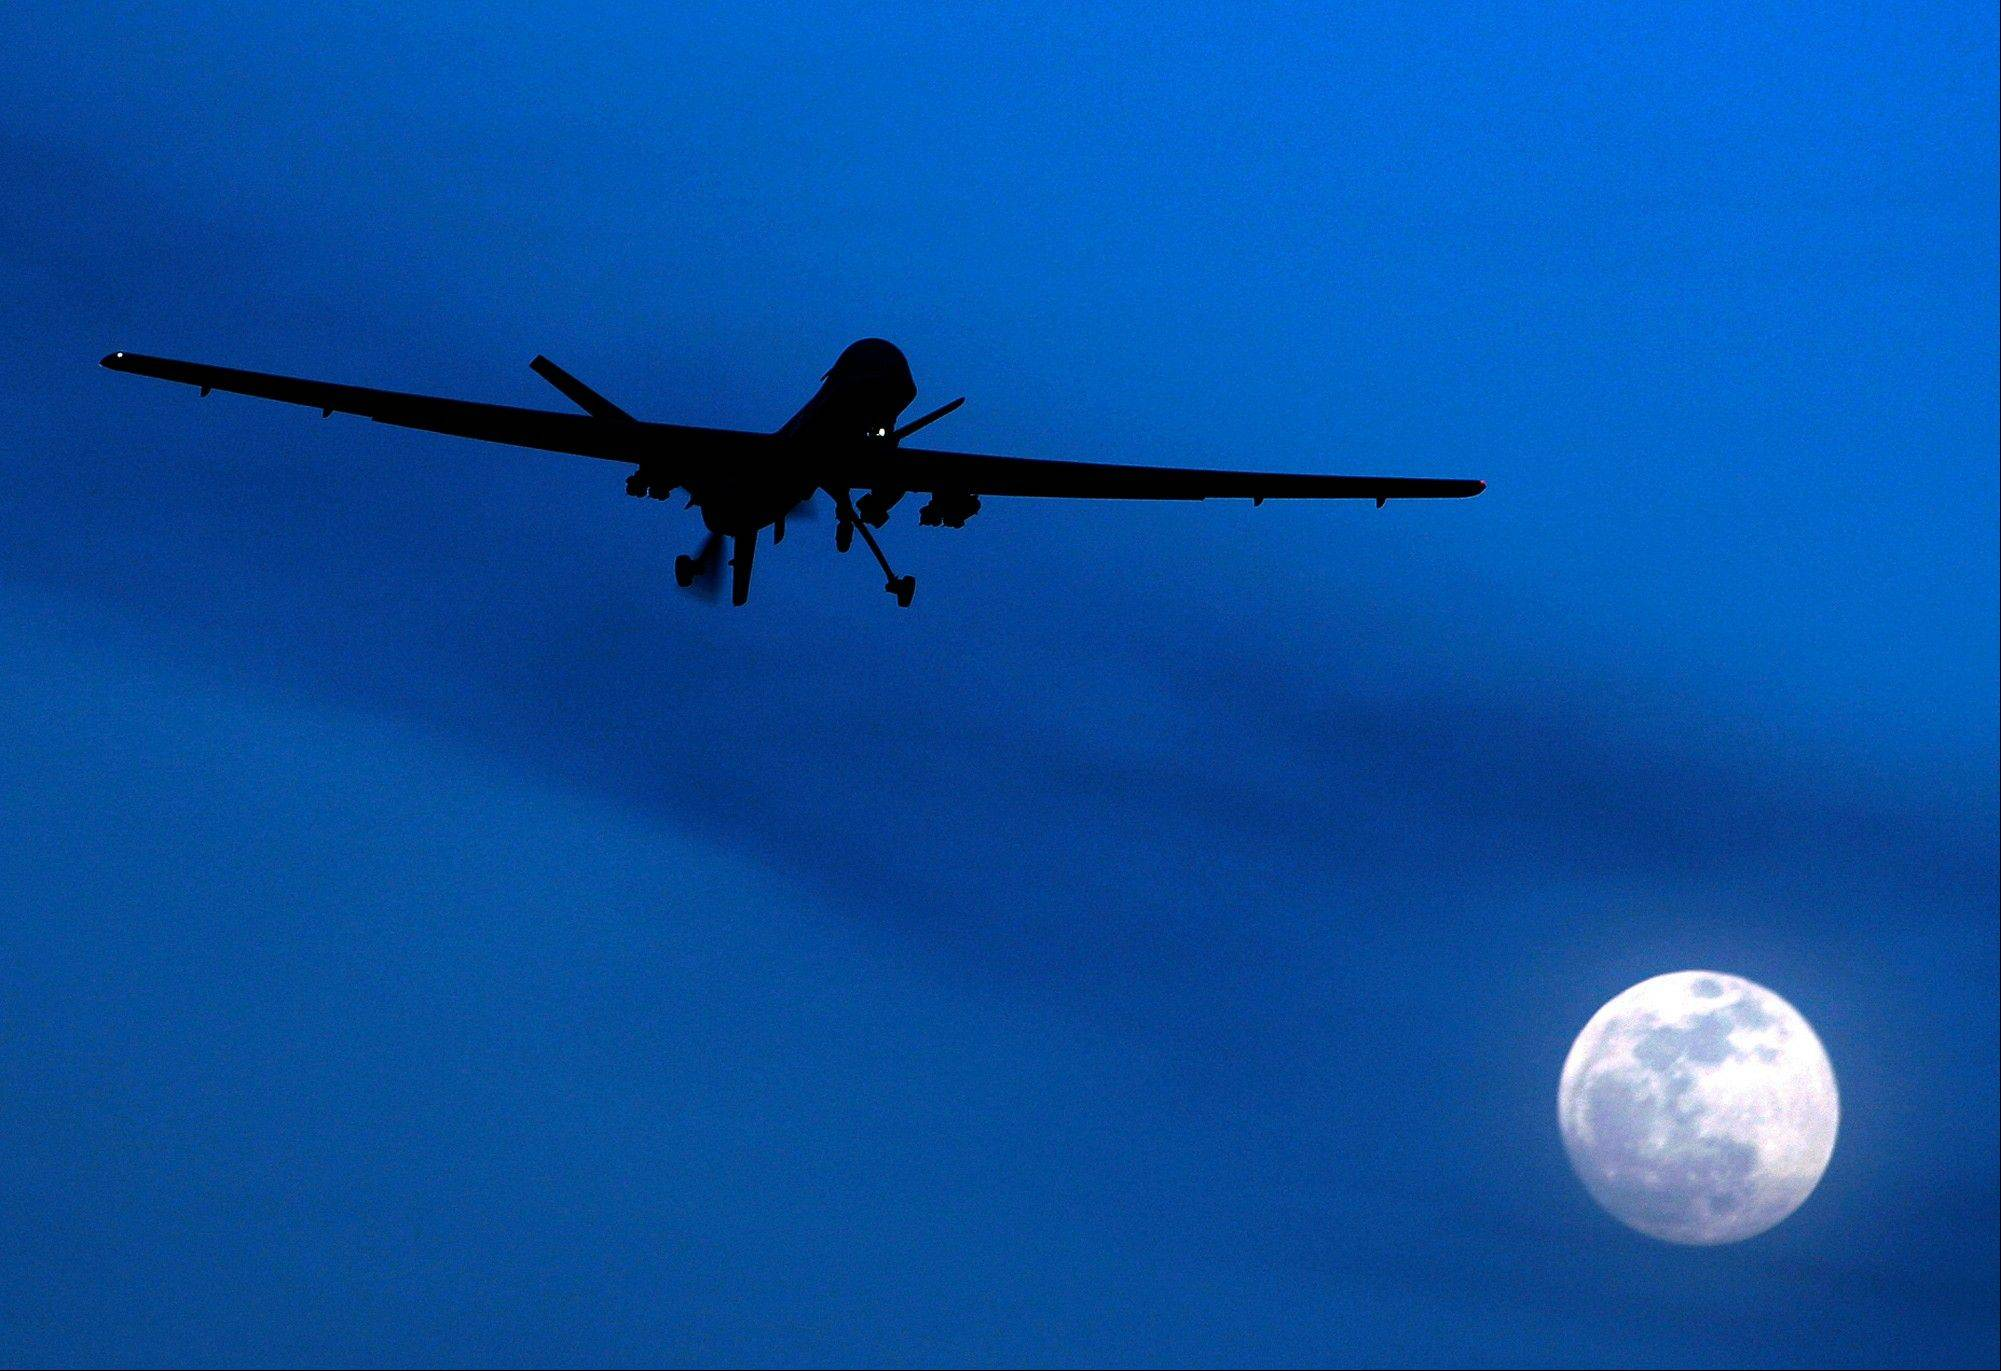 The number of U.S. drone strikes in Afghanistan jumped 72 percent in 2012, killing at least 16 civilians in a sharp increase from the previous year, the U.N. said Tuesday.